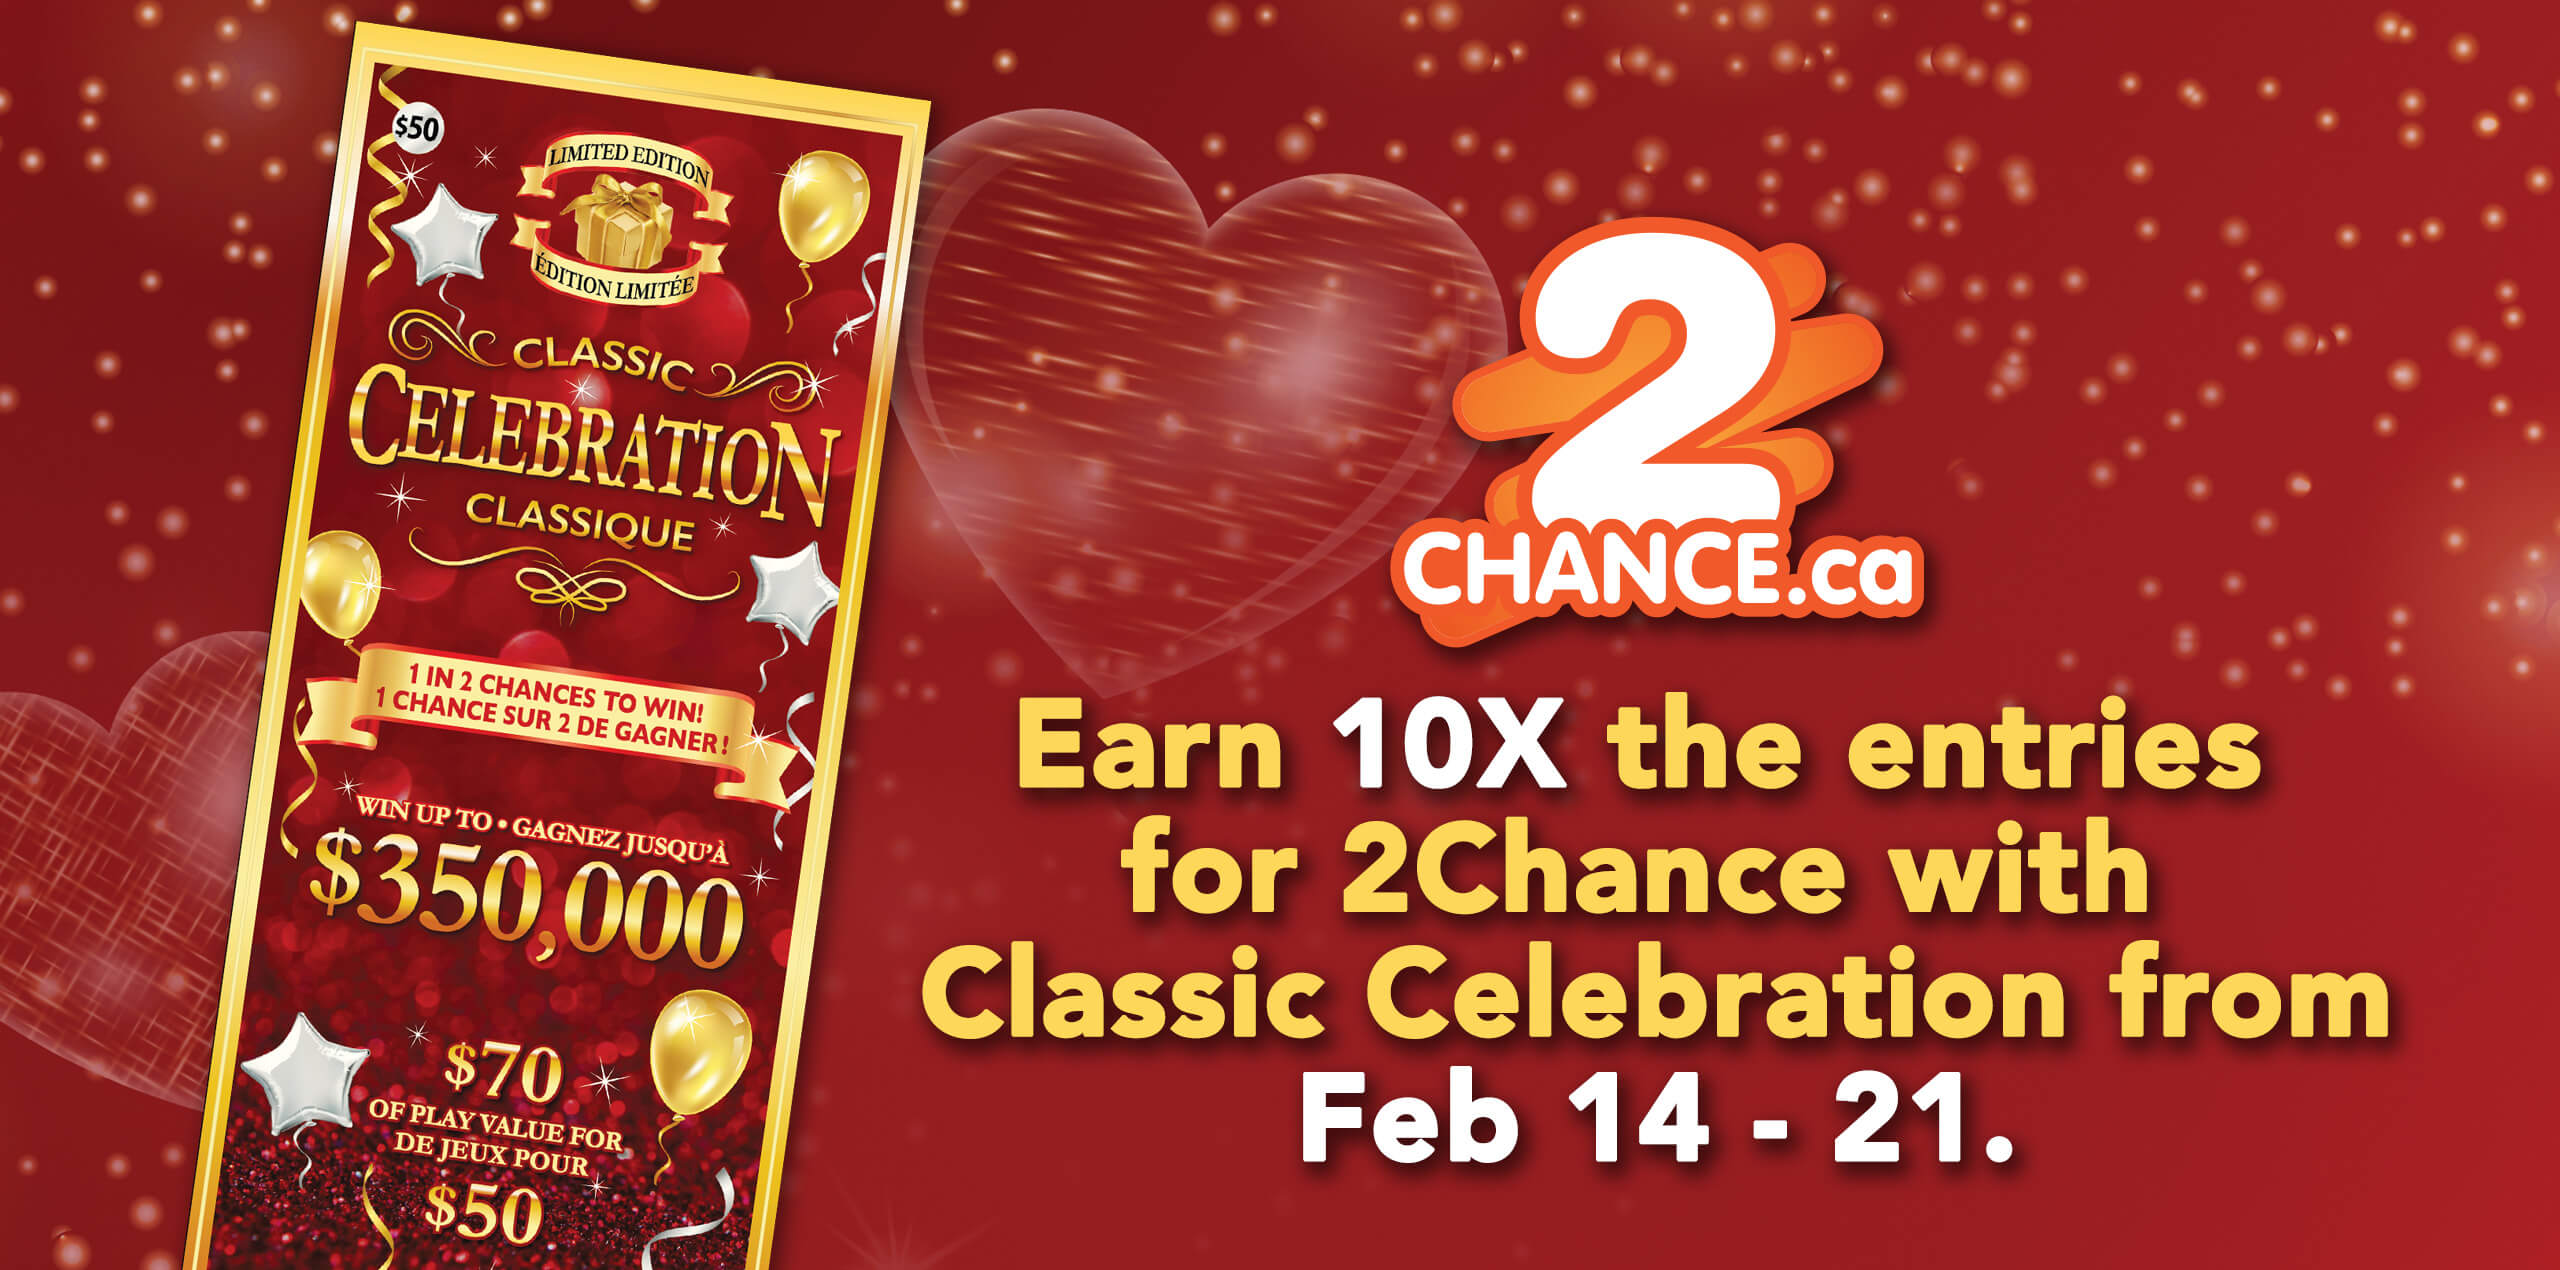 2chance.ca - Earn 10x the entries for 2chance with Classic Celebration from Feb 14 - 21.